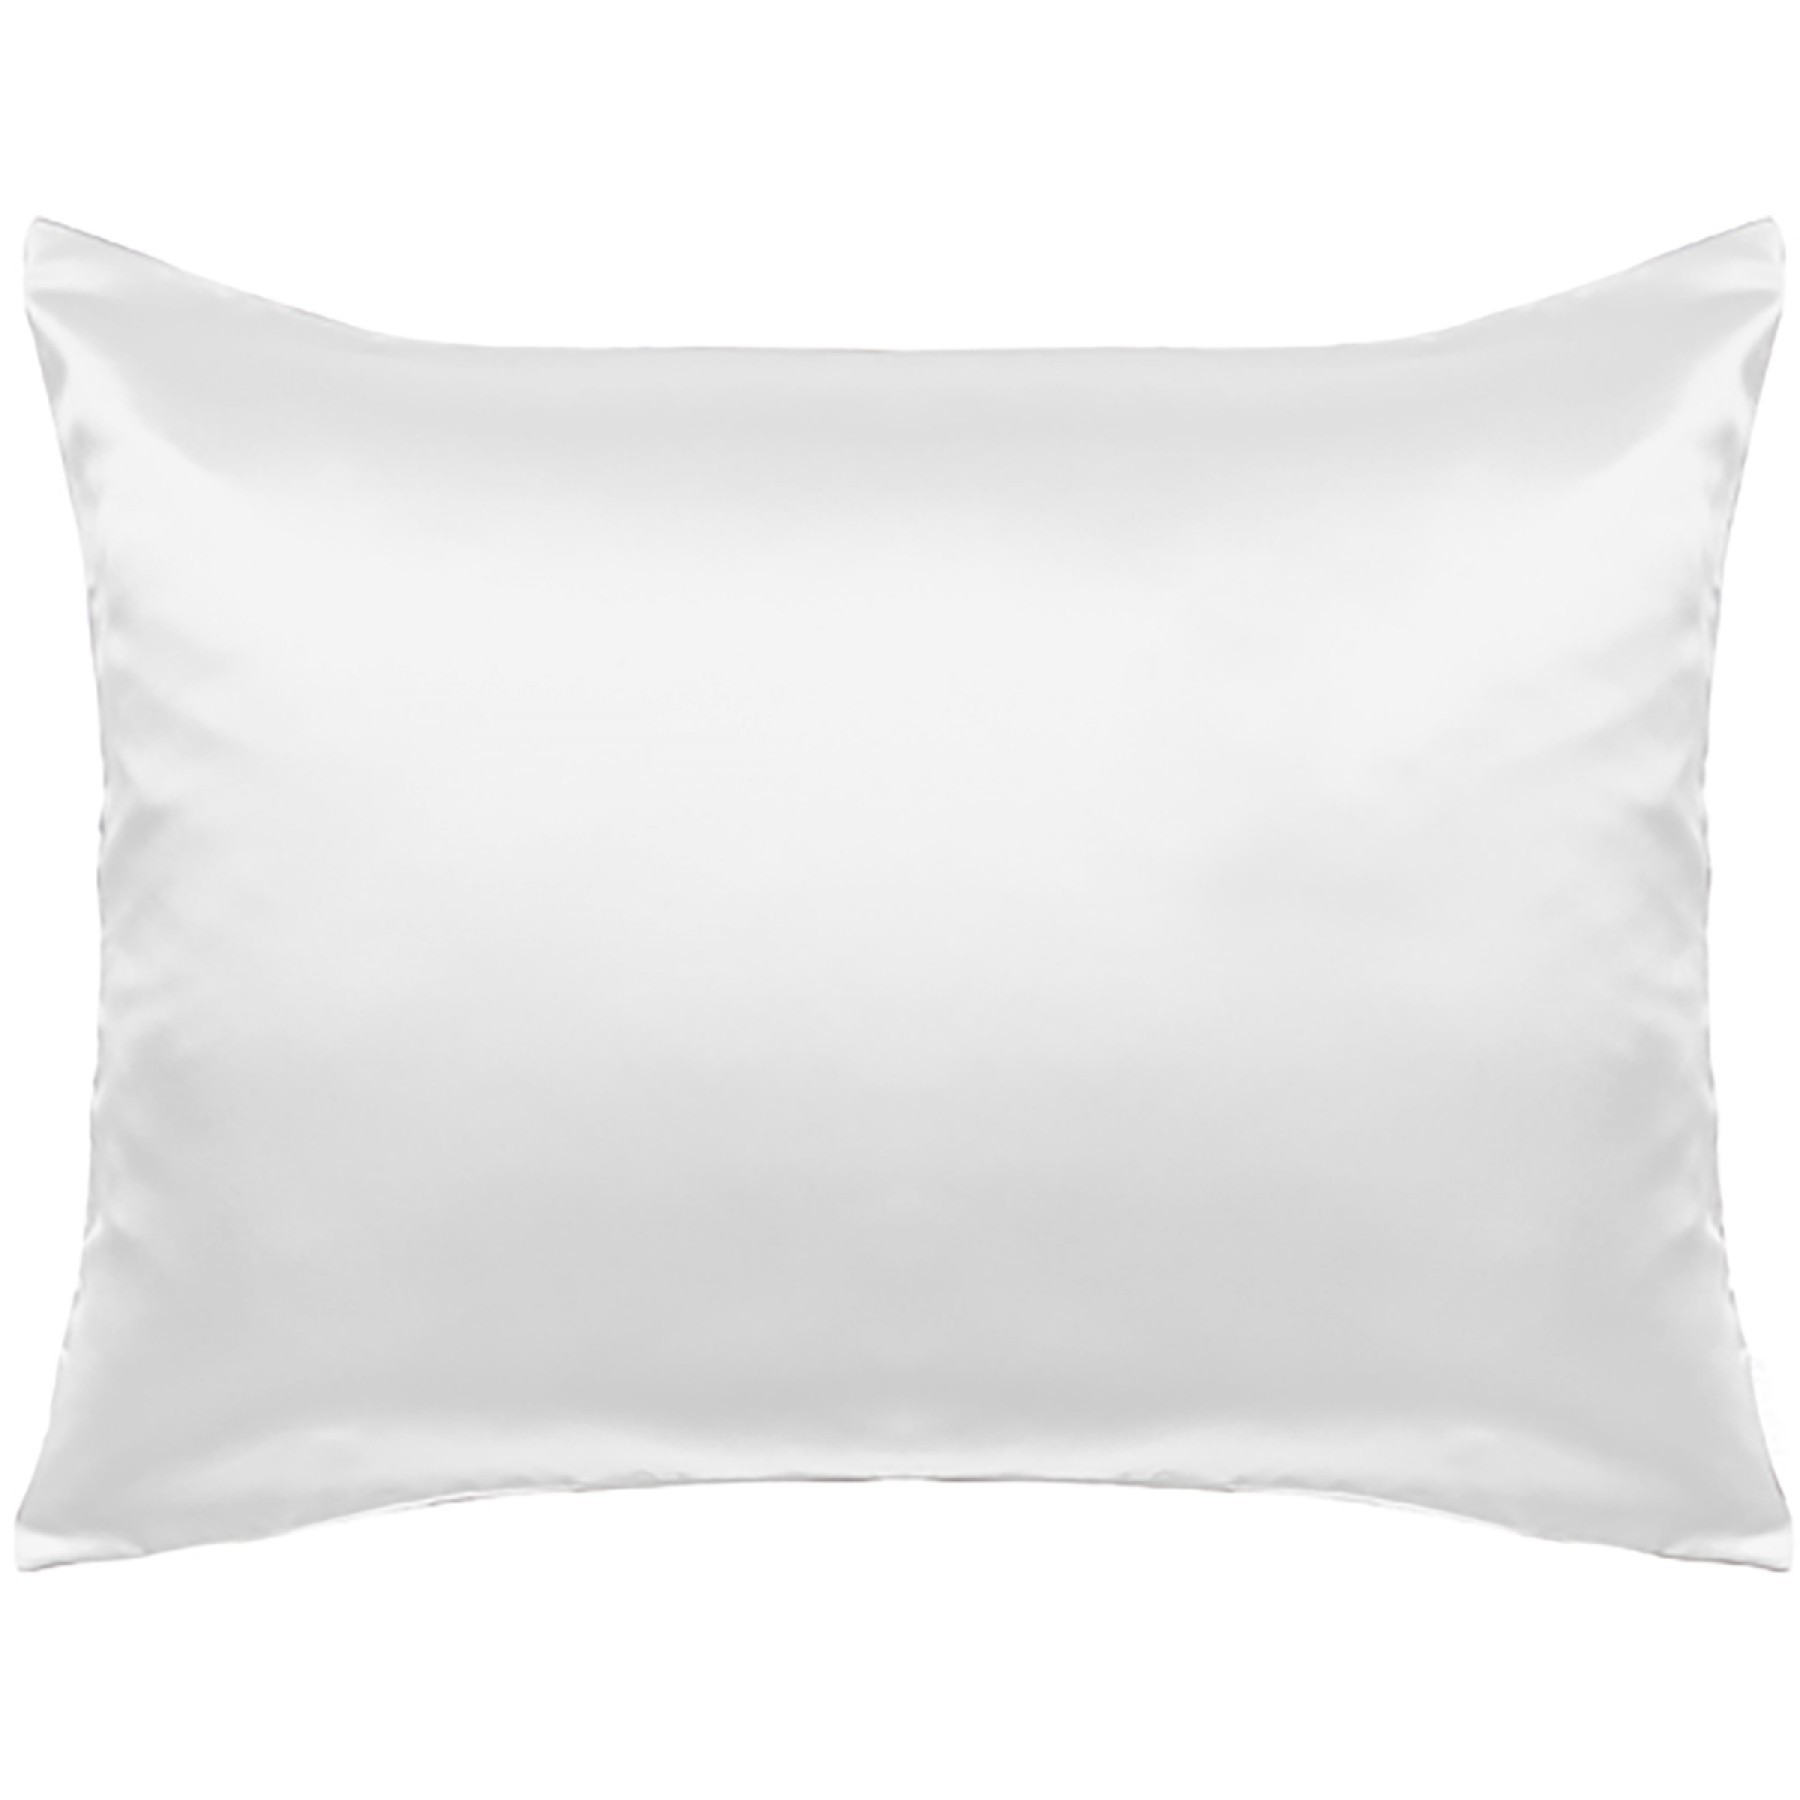 Livello Kapselsloop Satin Beauty White